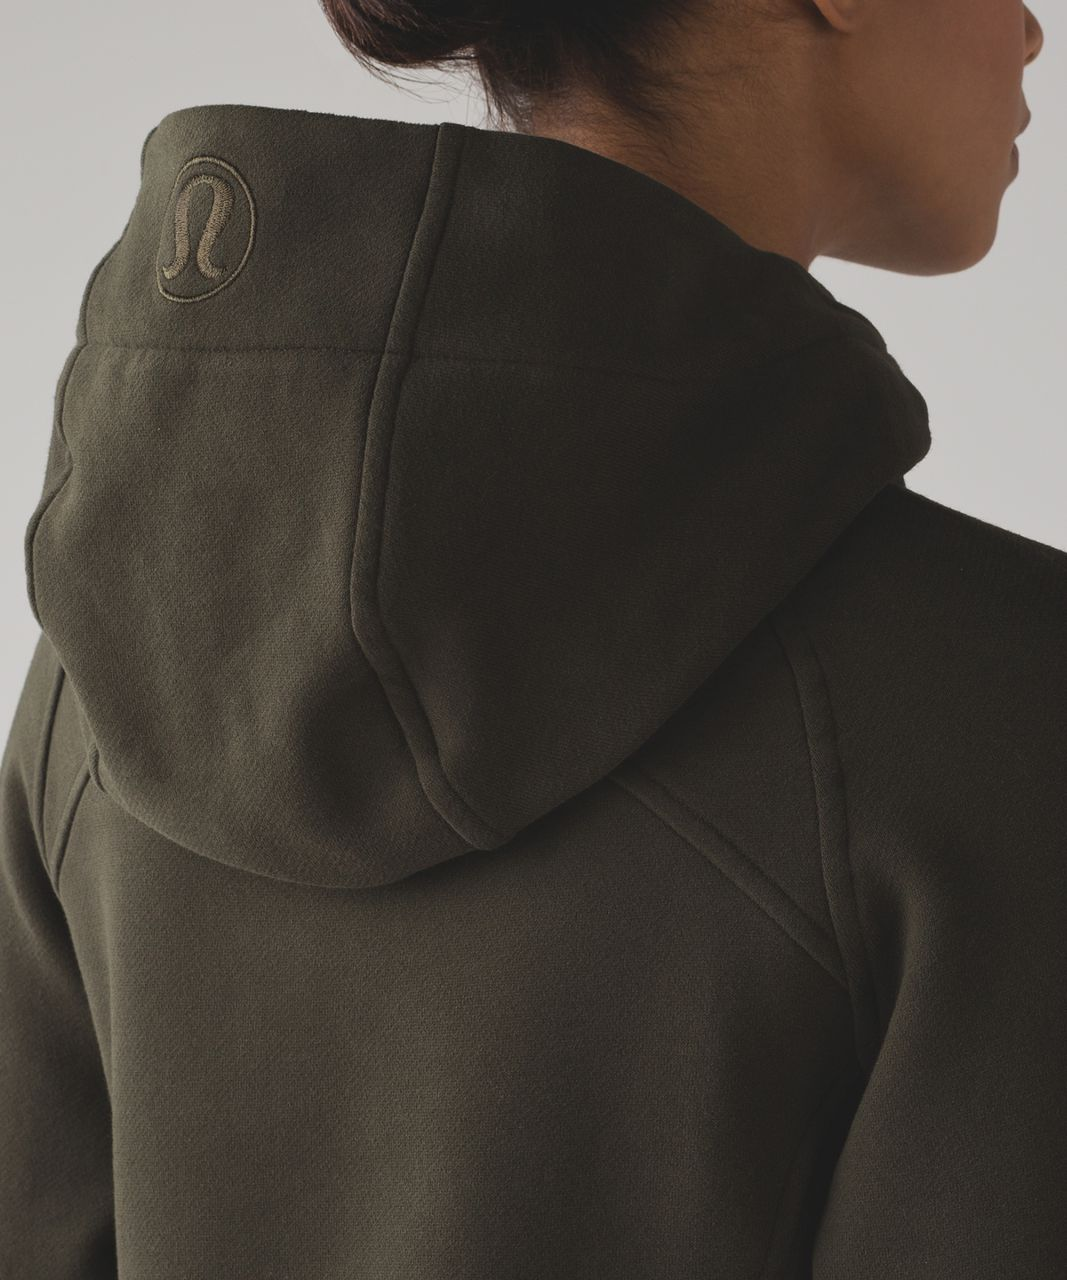 Lululemon Scuba Hoodie *Light Cotton Fleece - Dark Olive (First Release)